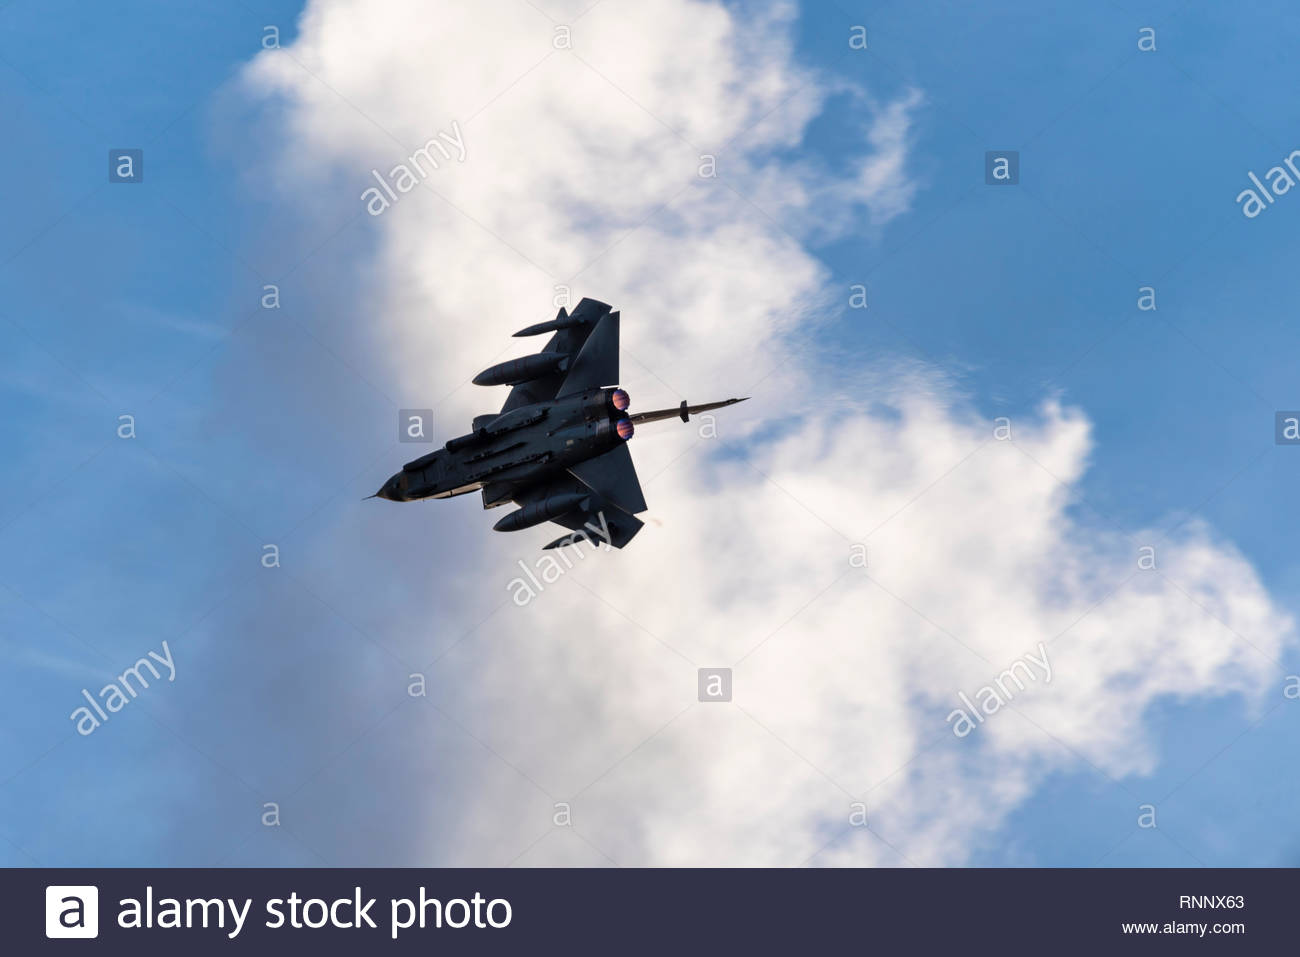 Three Panavia Tornado GR4 fighter jets have begun their farewell tour of the UK prior to the veteran aircraft going out of service with the RAF. A Tornado breaks into the circuit after the flight - Stock Image